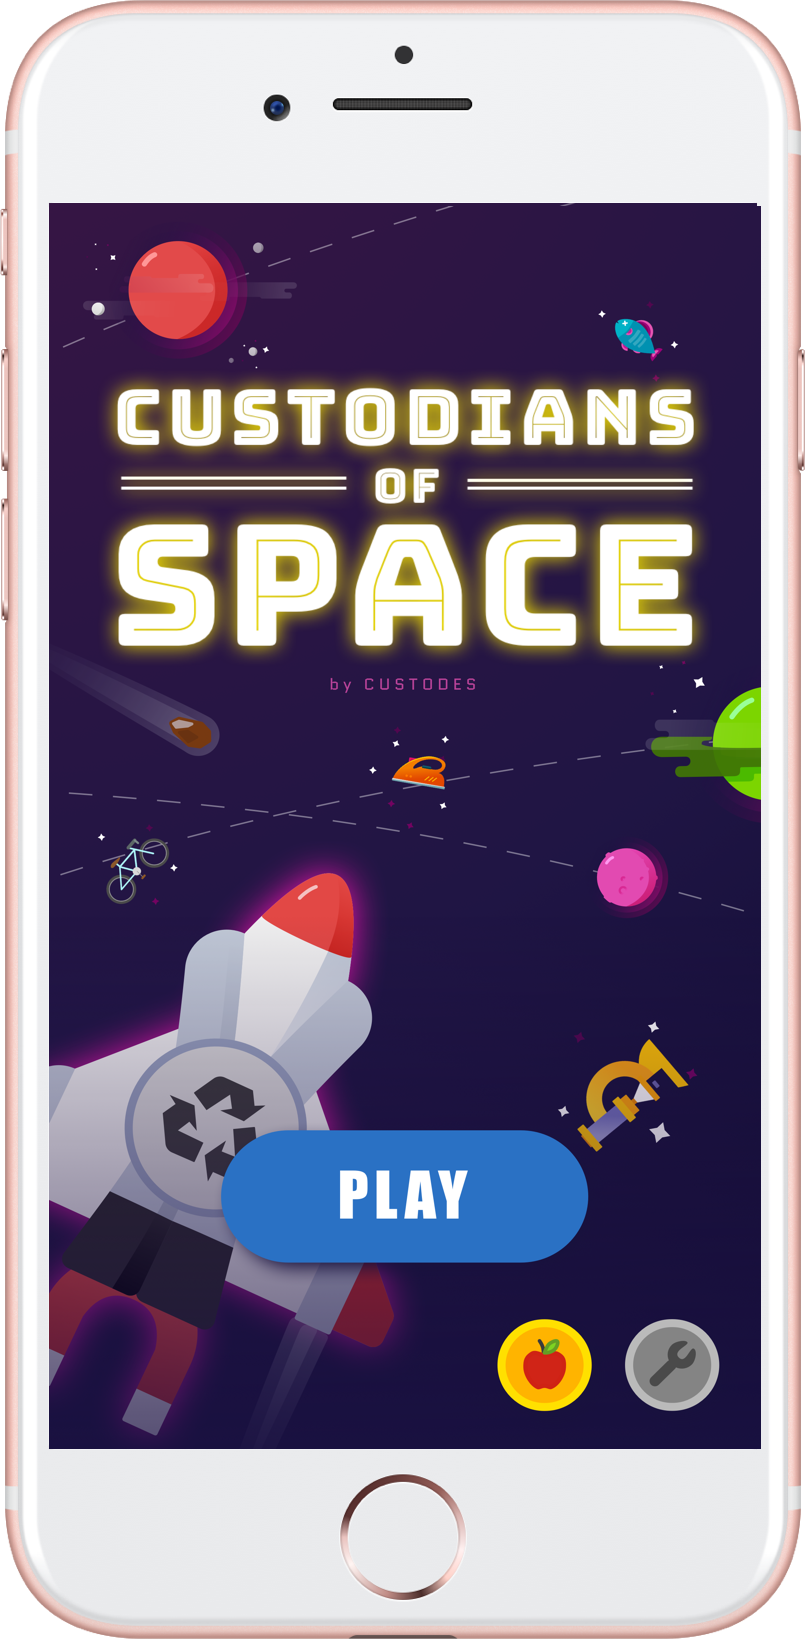 Mockup of the game in iPhone